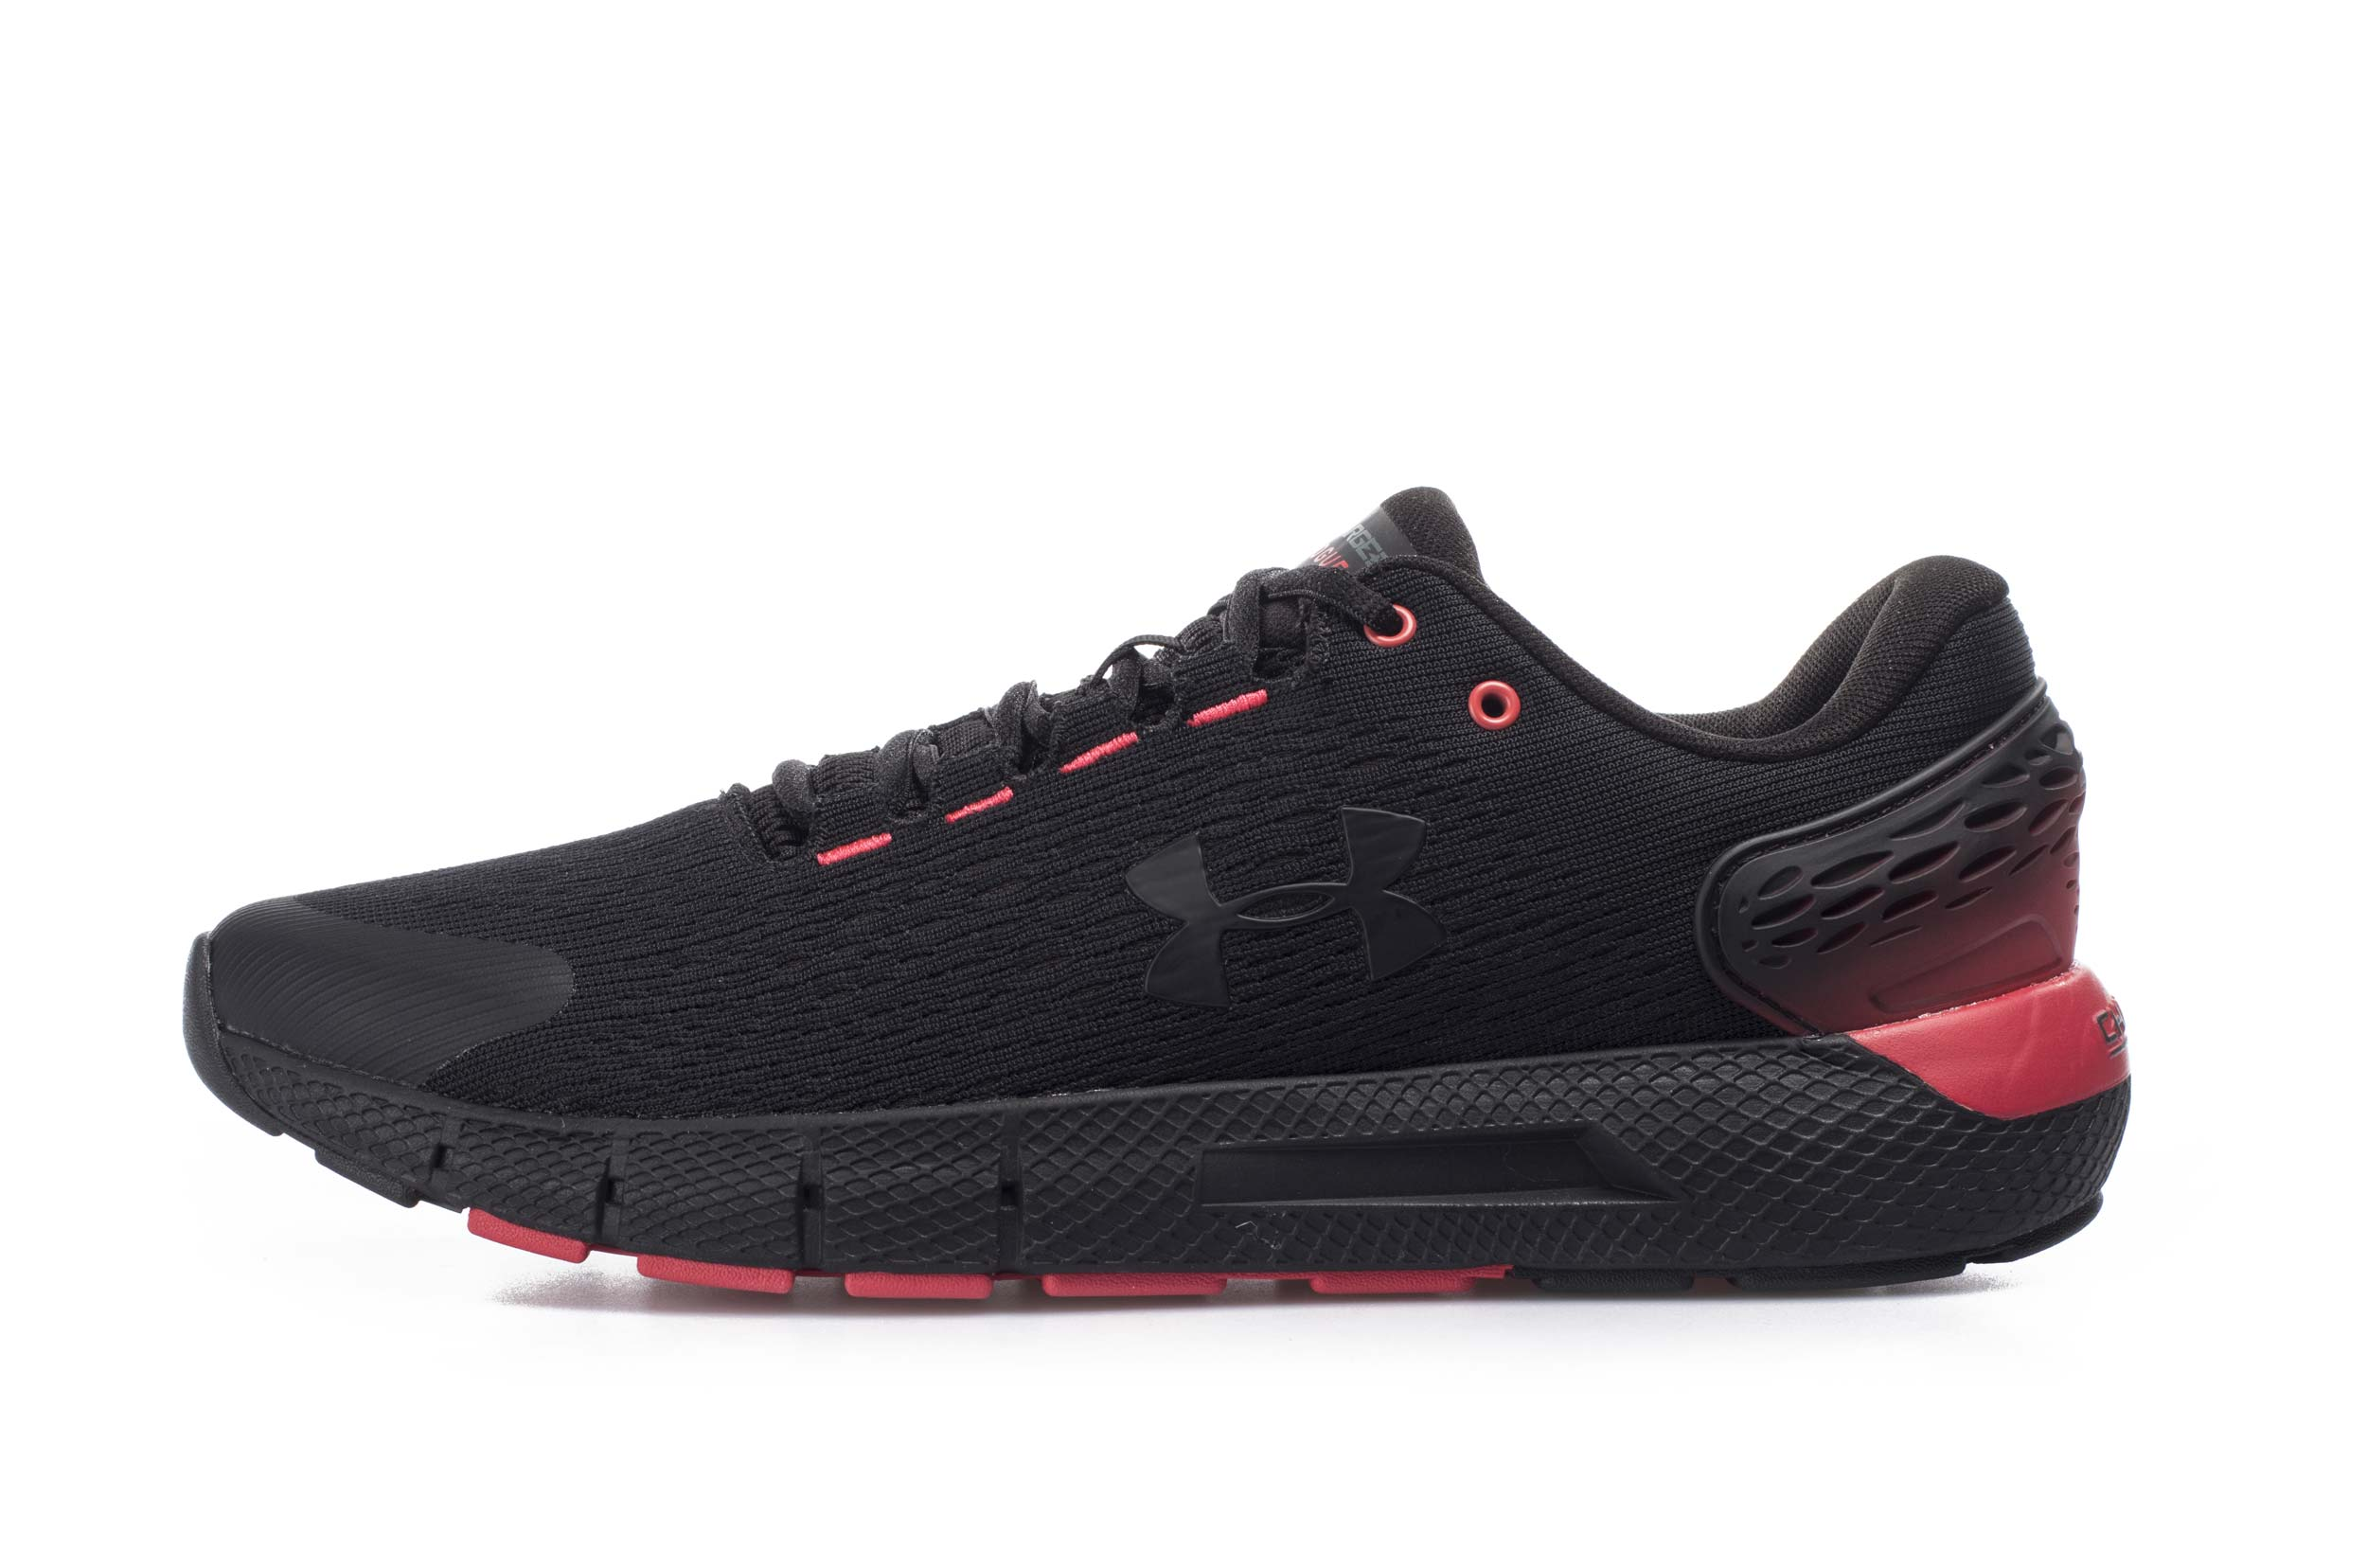 UNDER ARMOUR UA CHARGED ROGUE 2 3022592-002 Μαύρο